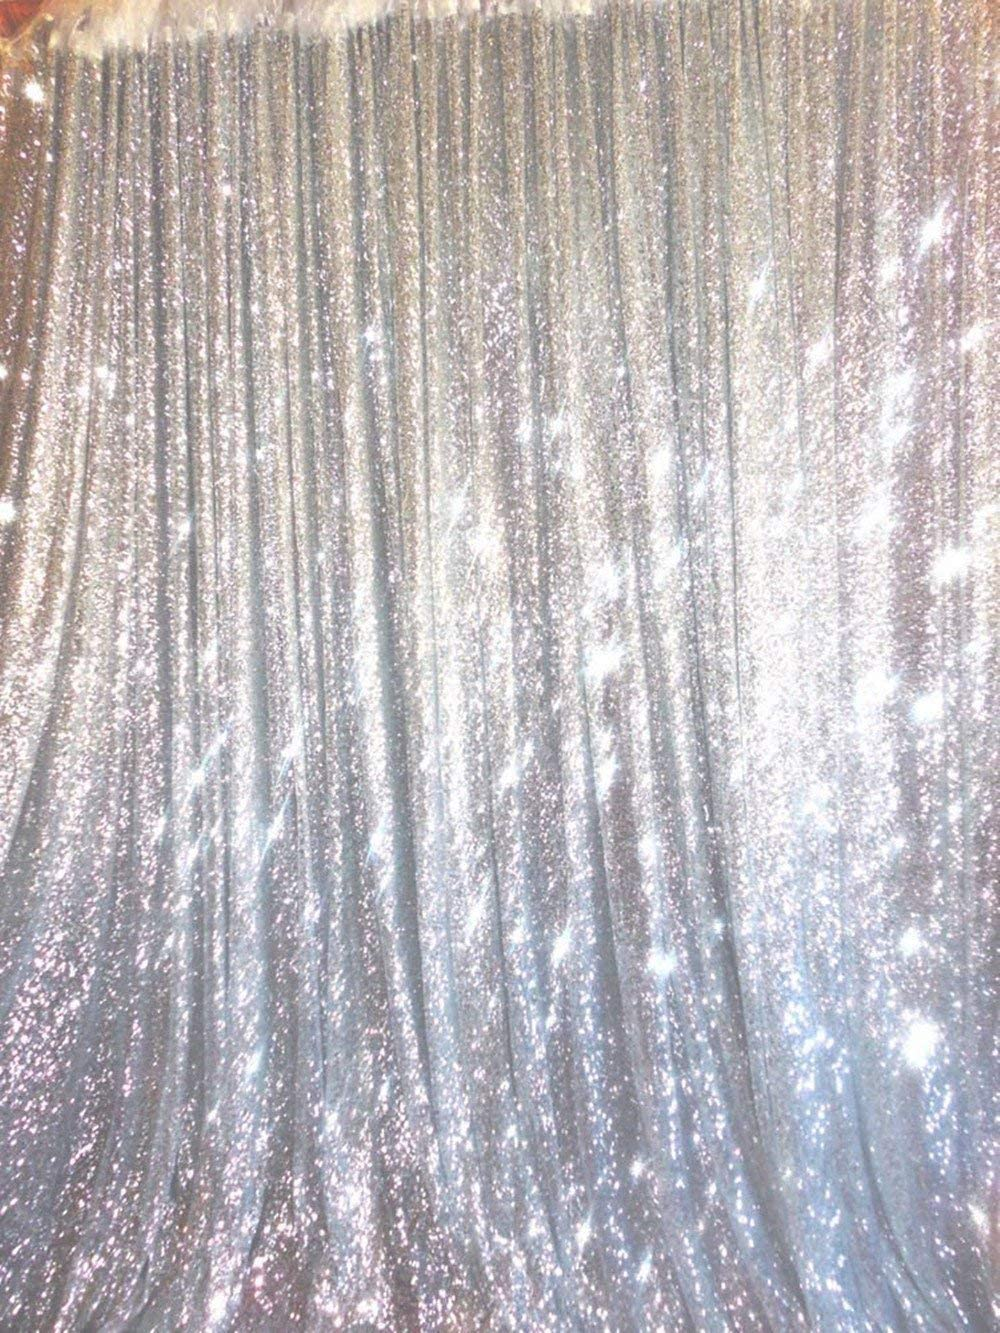 TRLYC 6 Ft X 6 Ft (72x72) Silver Sequins Backdrop Curtain for Wedding Mathera' Day